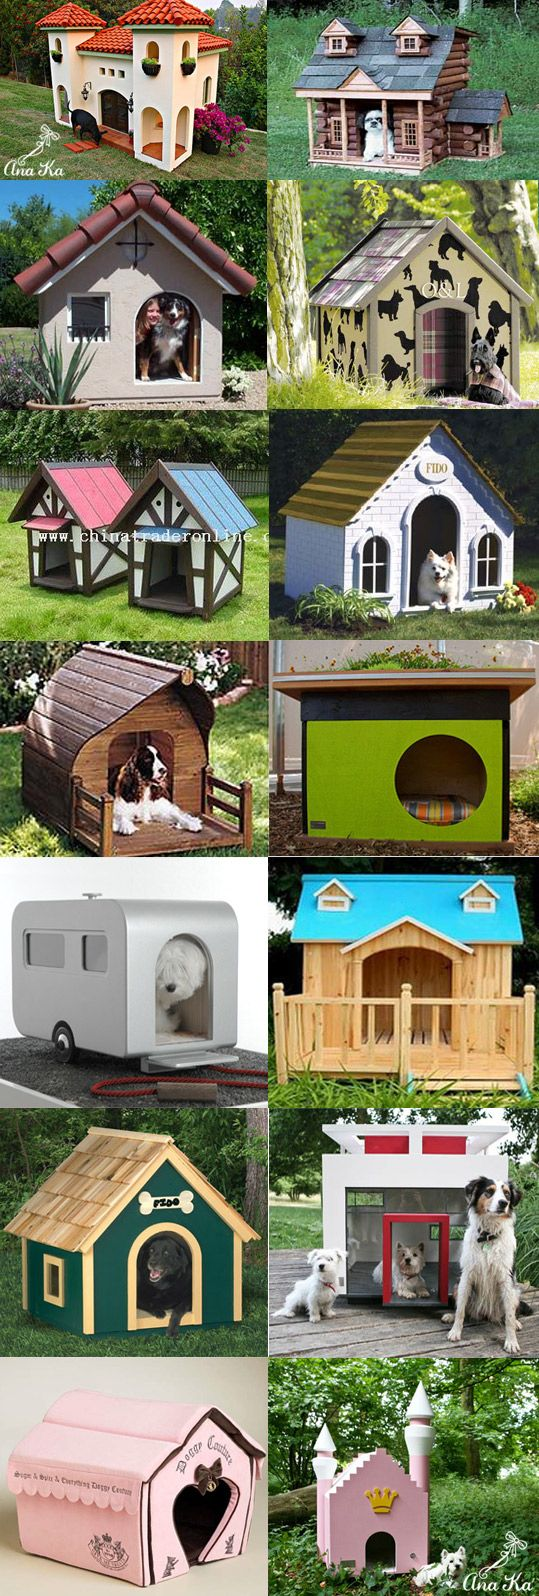 A variety of dog houses made to portray the owner and pets unique personalities.  #puppied